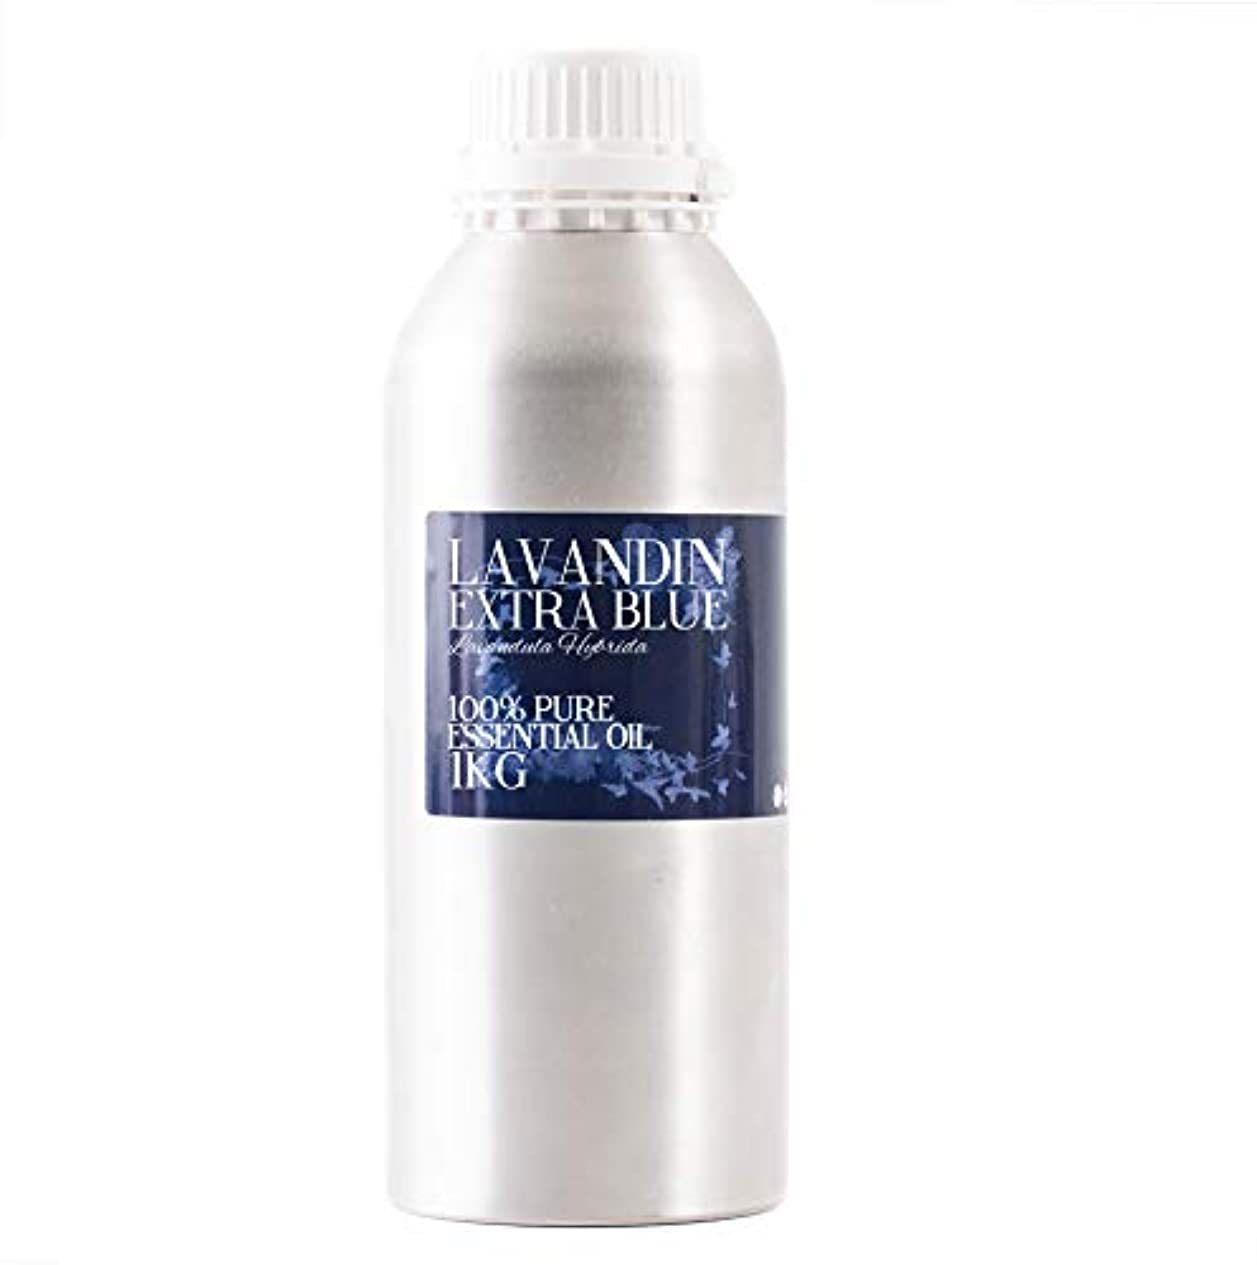 グリーンバック貝殻ガスMystic Moments | Lavandin Extra Blue Essential Oil - 1Kg - 100% Pure